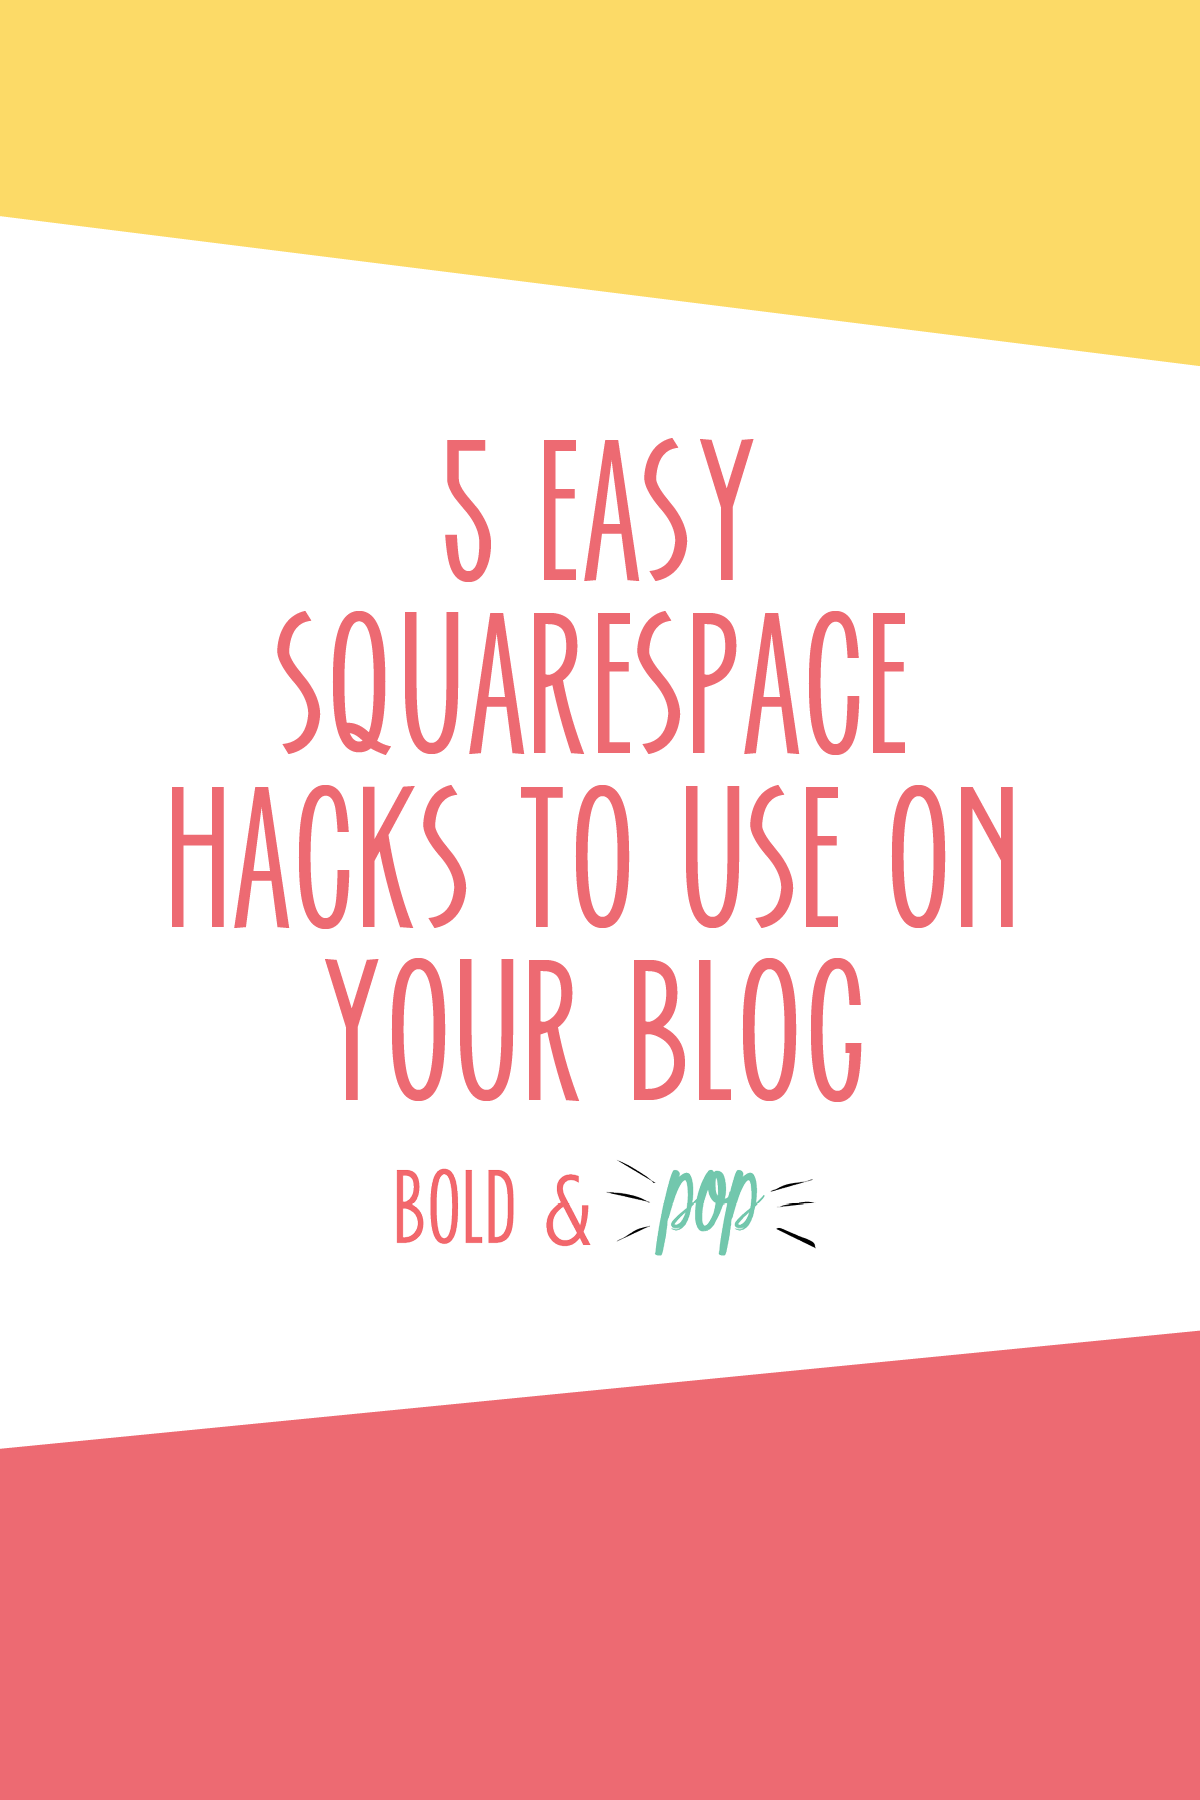 Bold & Pop : 5 Easy Squarespace Hacks to use on your Blog